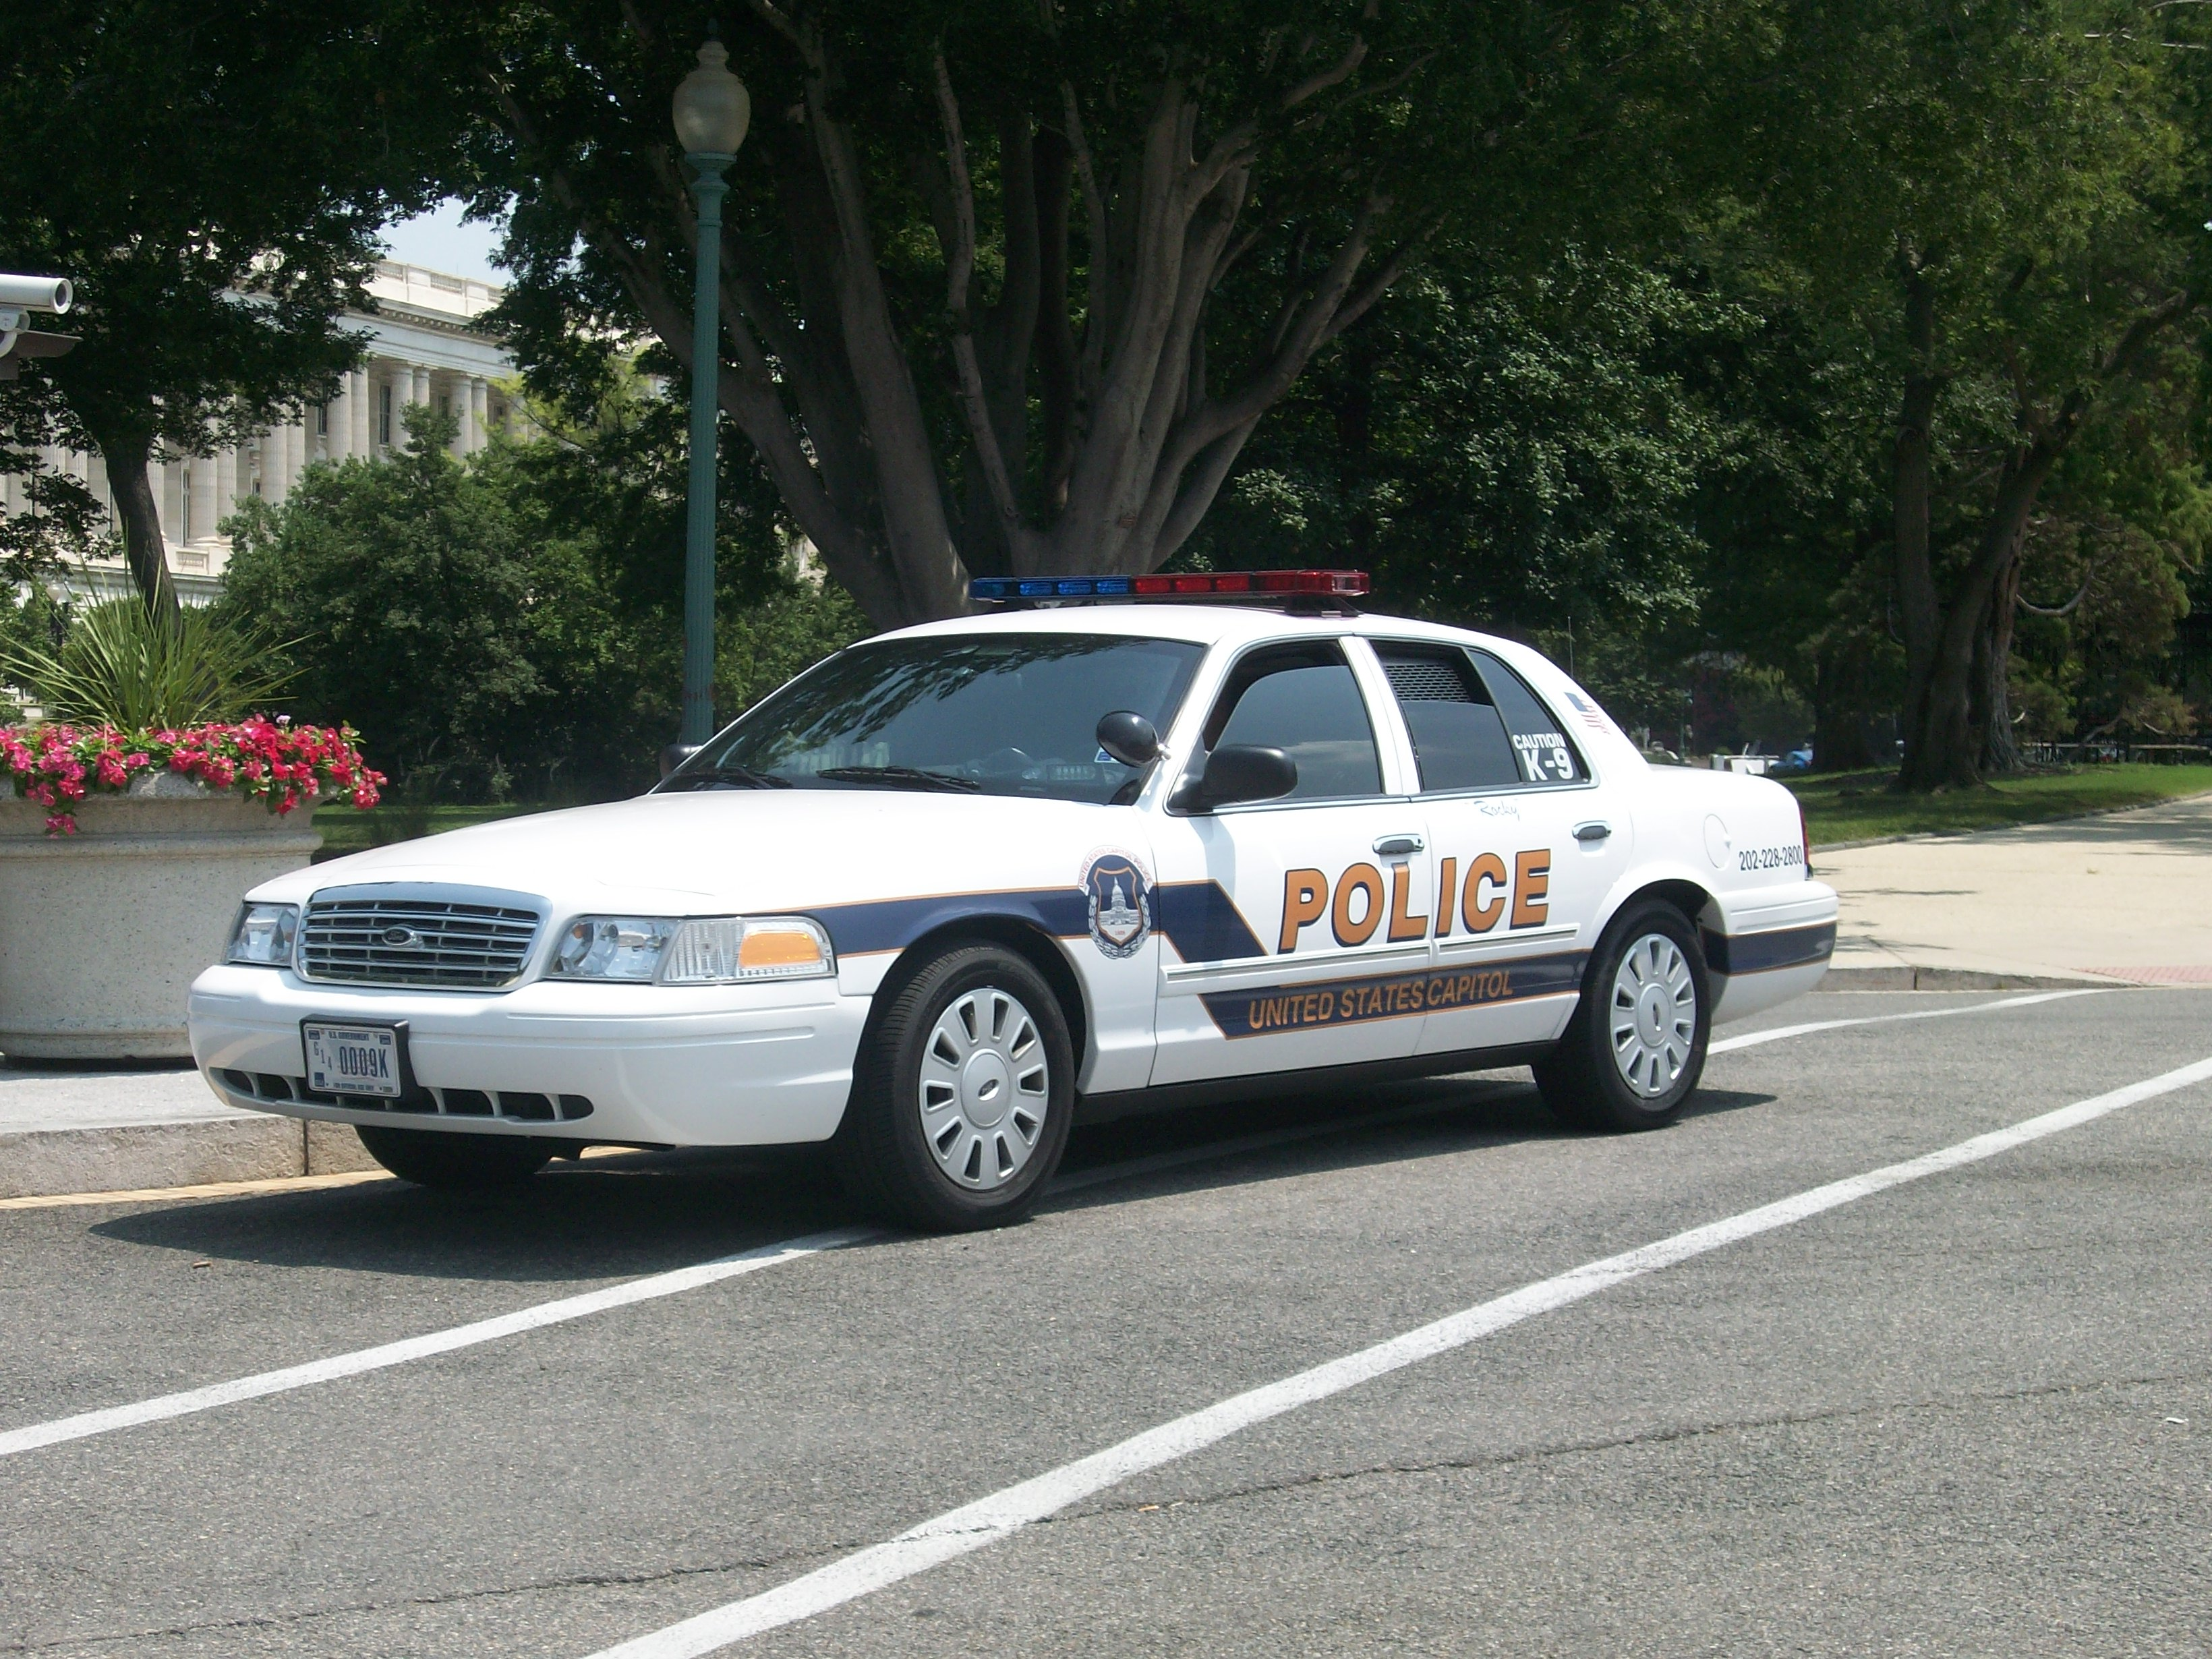 Description United States Capitol Police Washington D.C. 2011 2